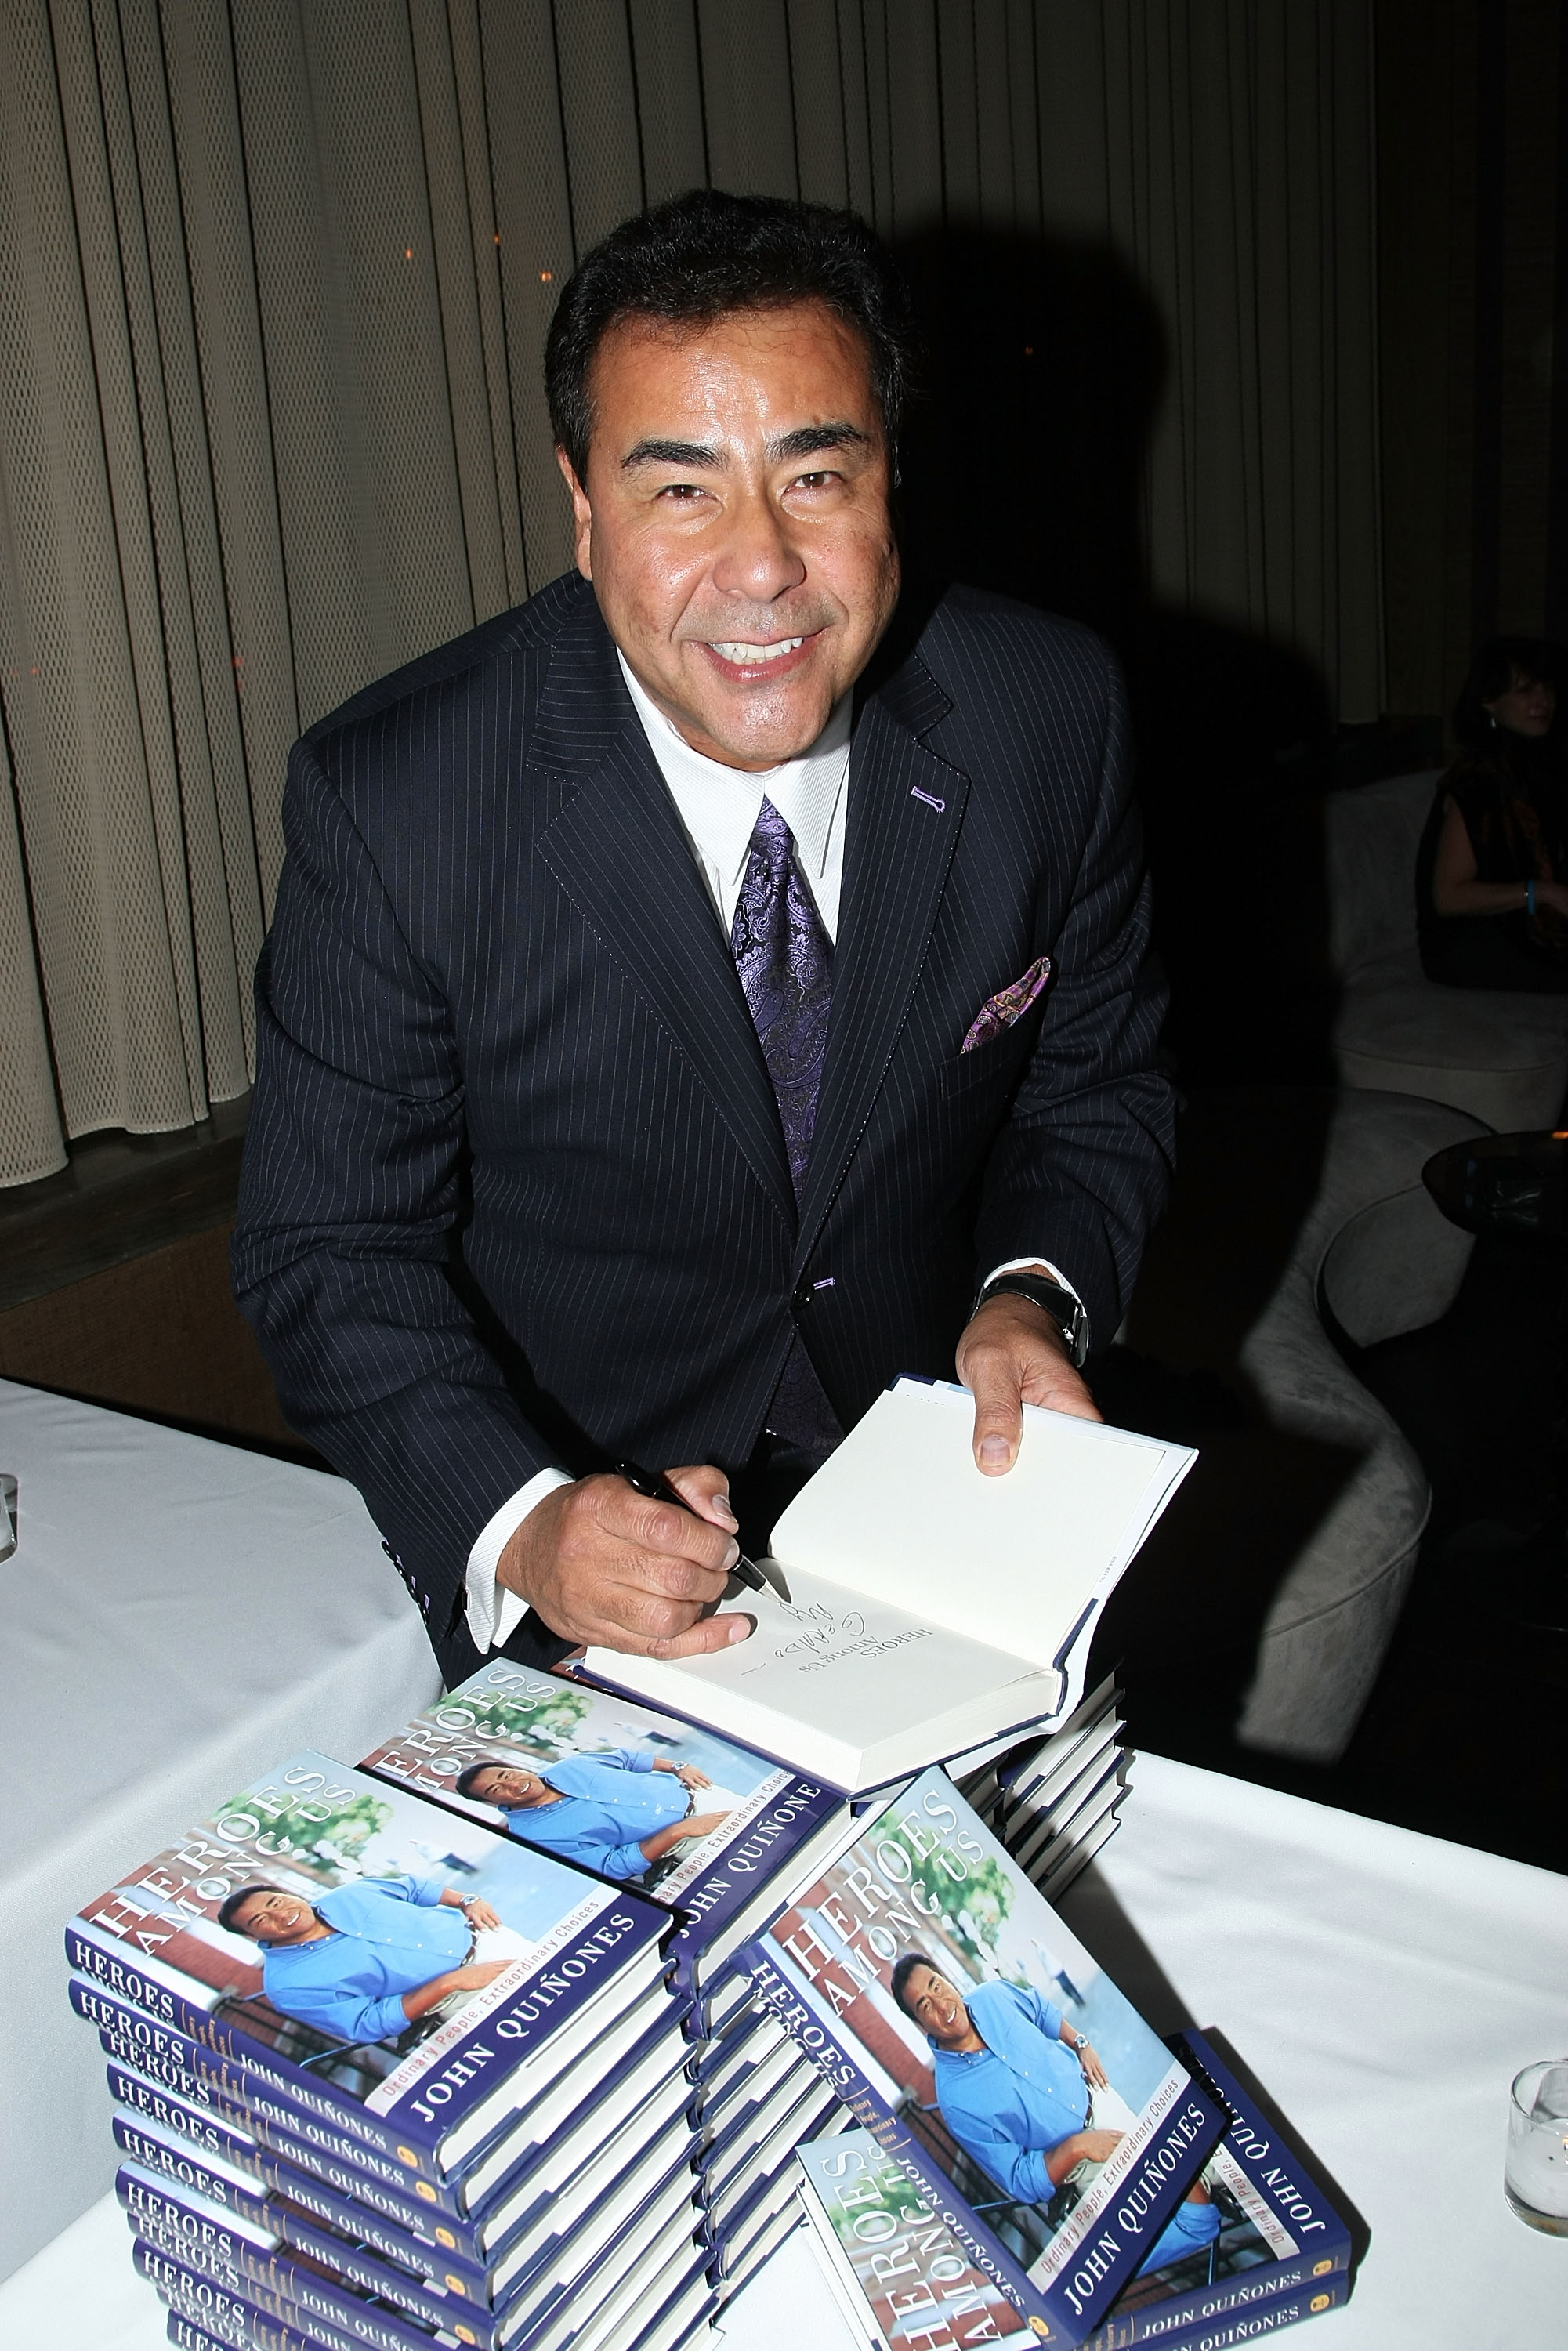 Author John Quinones attends the 'Heroes Among Us' book release party at the Tribeca Grand Hotel on January 9, 2009, in New York City (Getty Images)